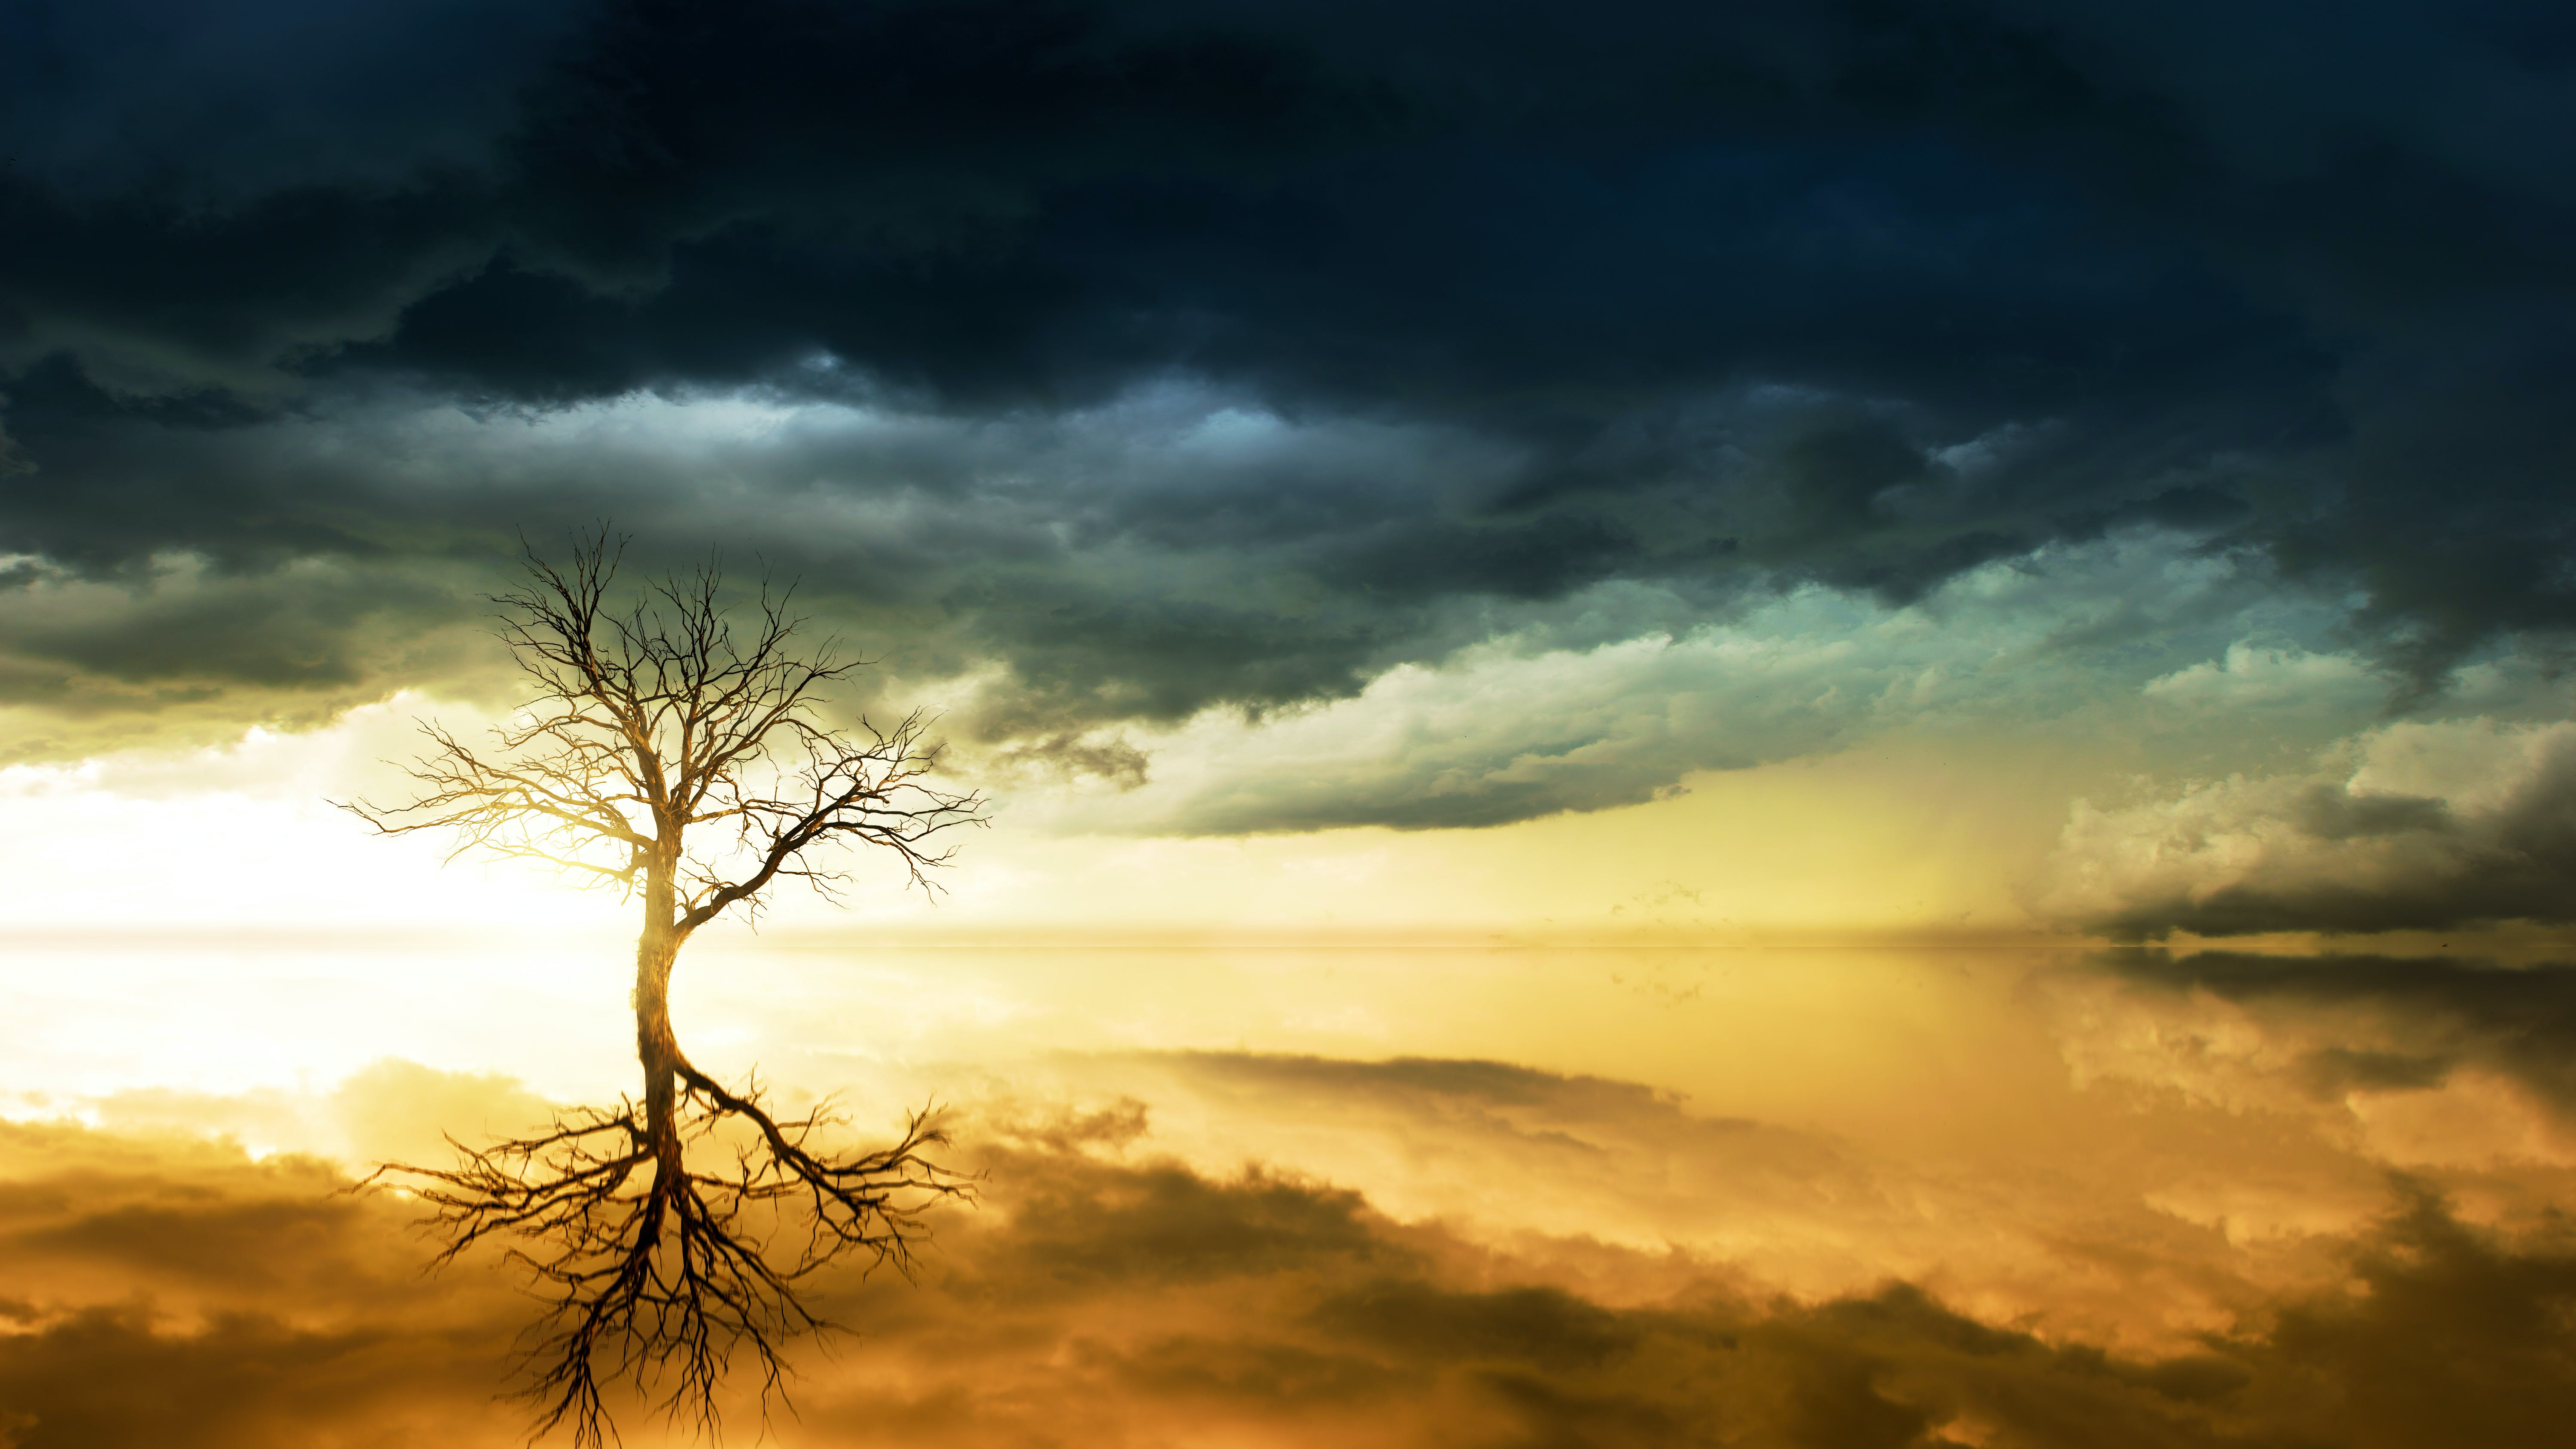 Photo of Bare Tree Under Cloudy Sky